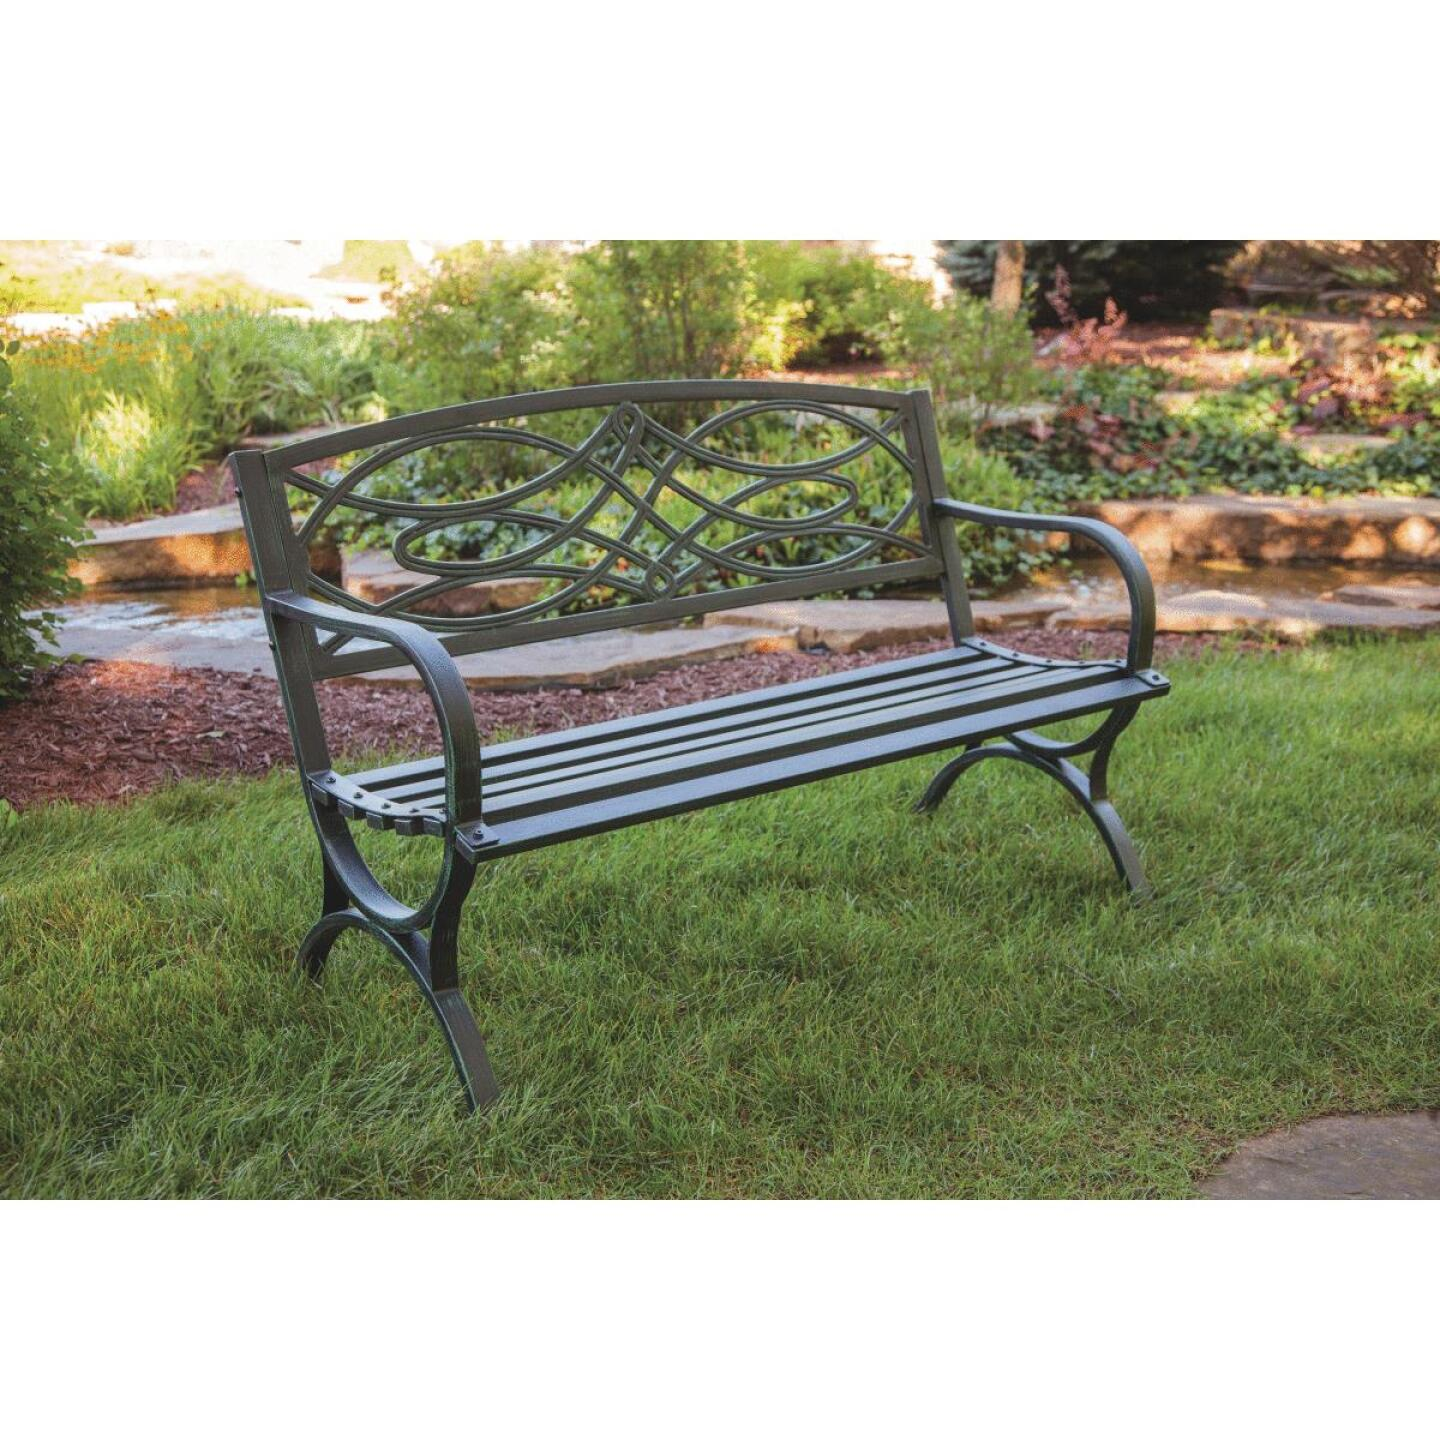 Outdoor Expressions Steel Scroll Bench Image 5